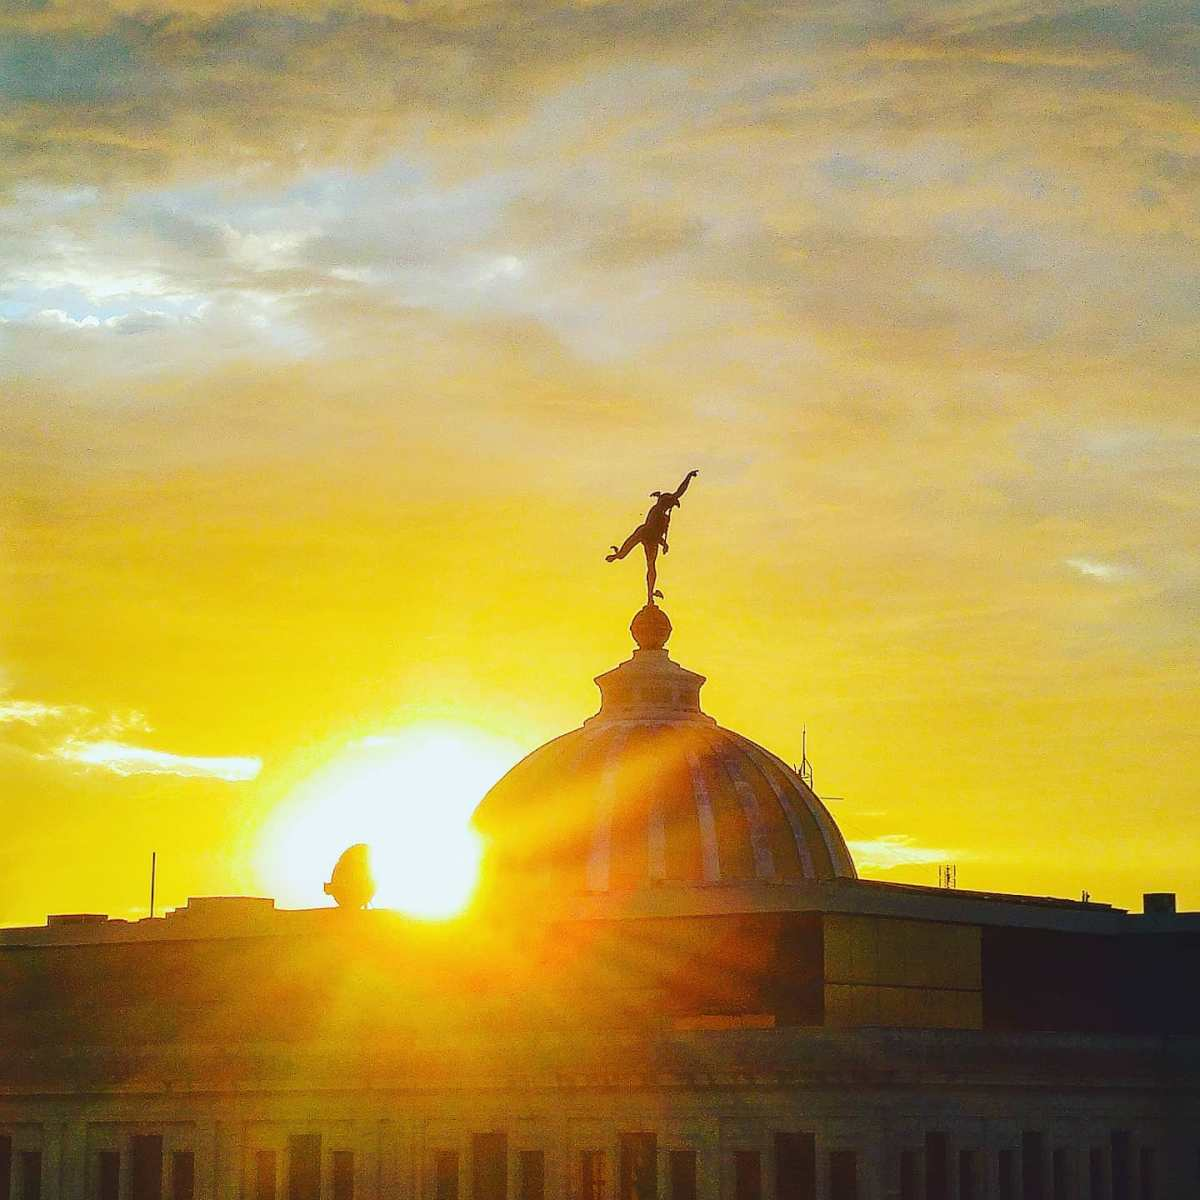 Dancing at sunset 🌞 La Habana, Cuba 2015#habana #avana #travelholic #traveladdict #travelling #travellife #traveling #travel #traveldeeper #sunny #travelphotography #scolpture #cuba #travelpics #travelingram #travels #travelawesome #travelphoto #sunlight #tbt #travelstoke #traveler #clouds #traveller #travelgram